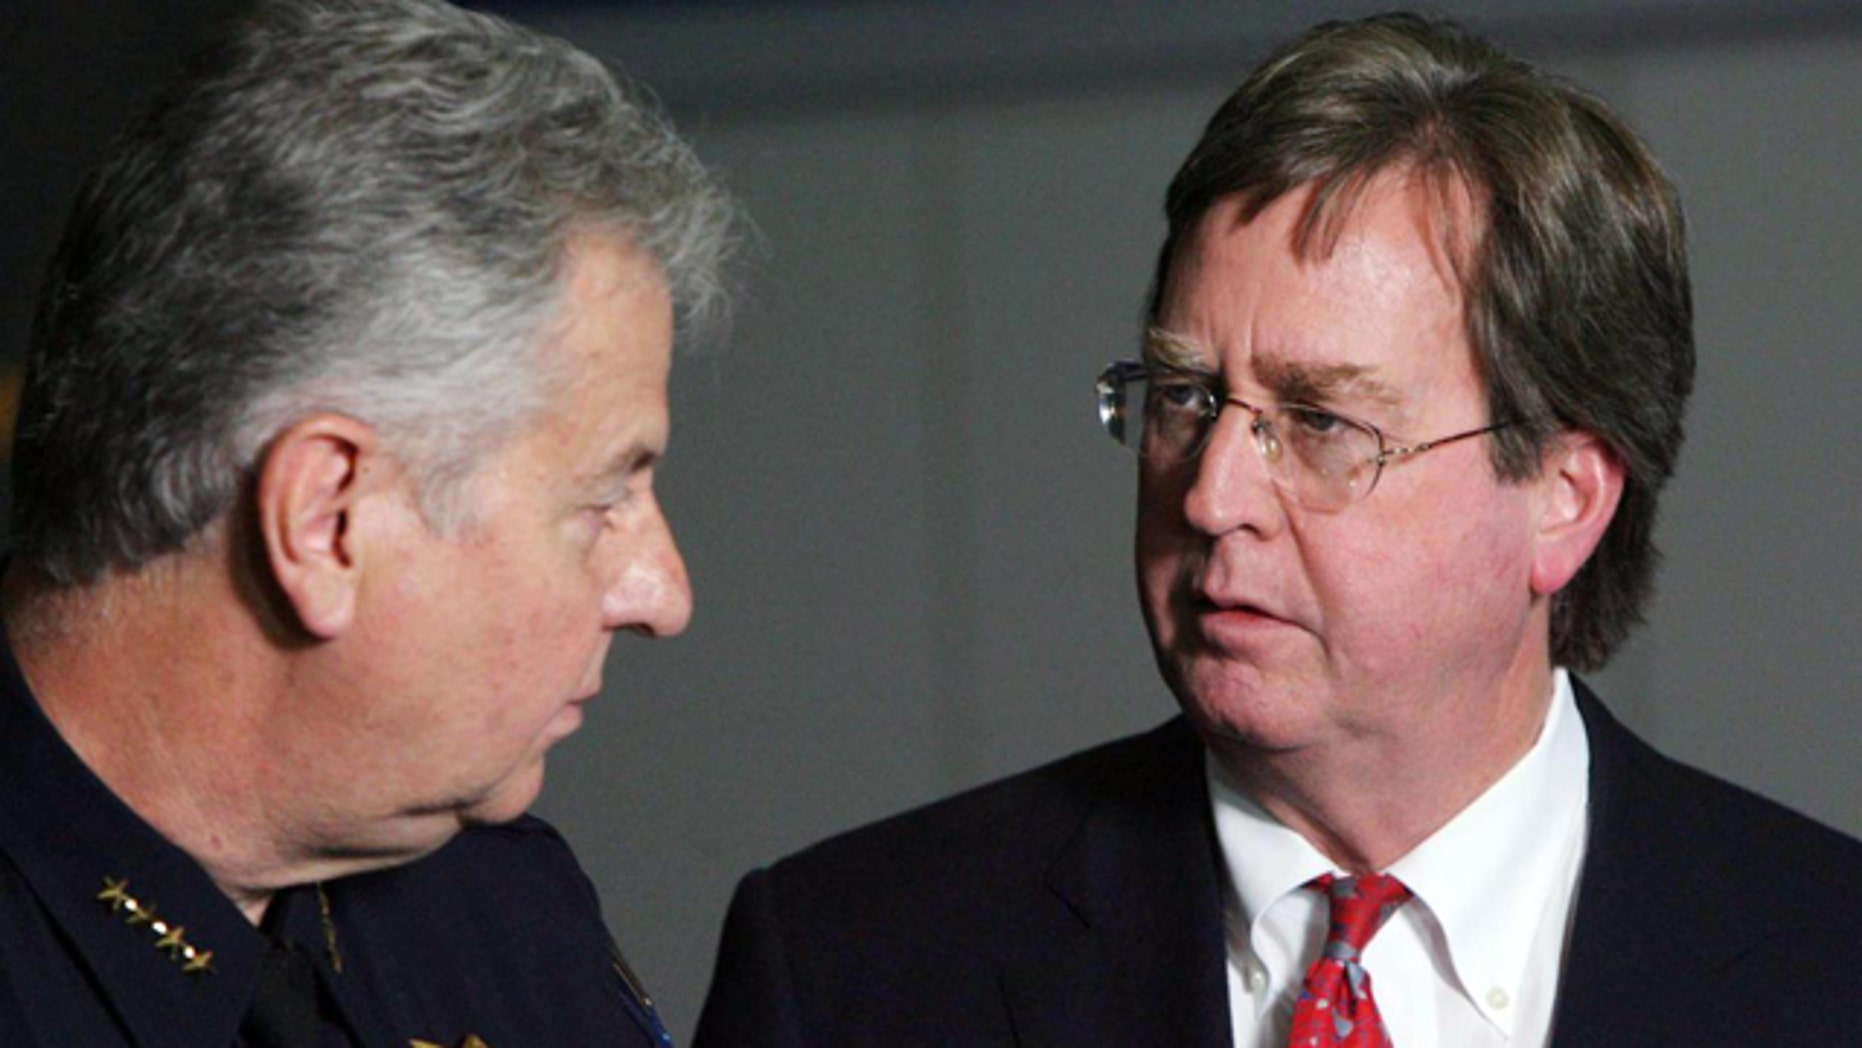 April 7, 2012: Tulsa Mayor Dewey Bartlett, right, chats with Tulsa Chief of Police Chuck Jordan during a news conference at the Tulsa Police Department in downtown Tulsa, Okla.